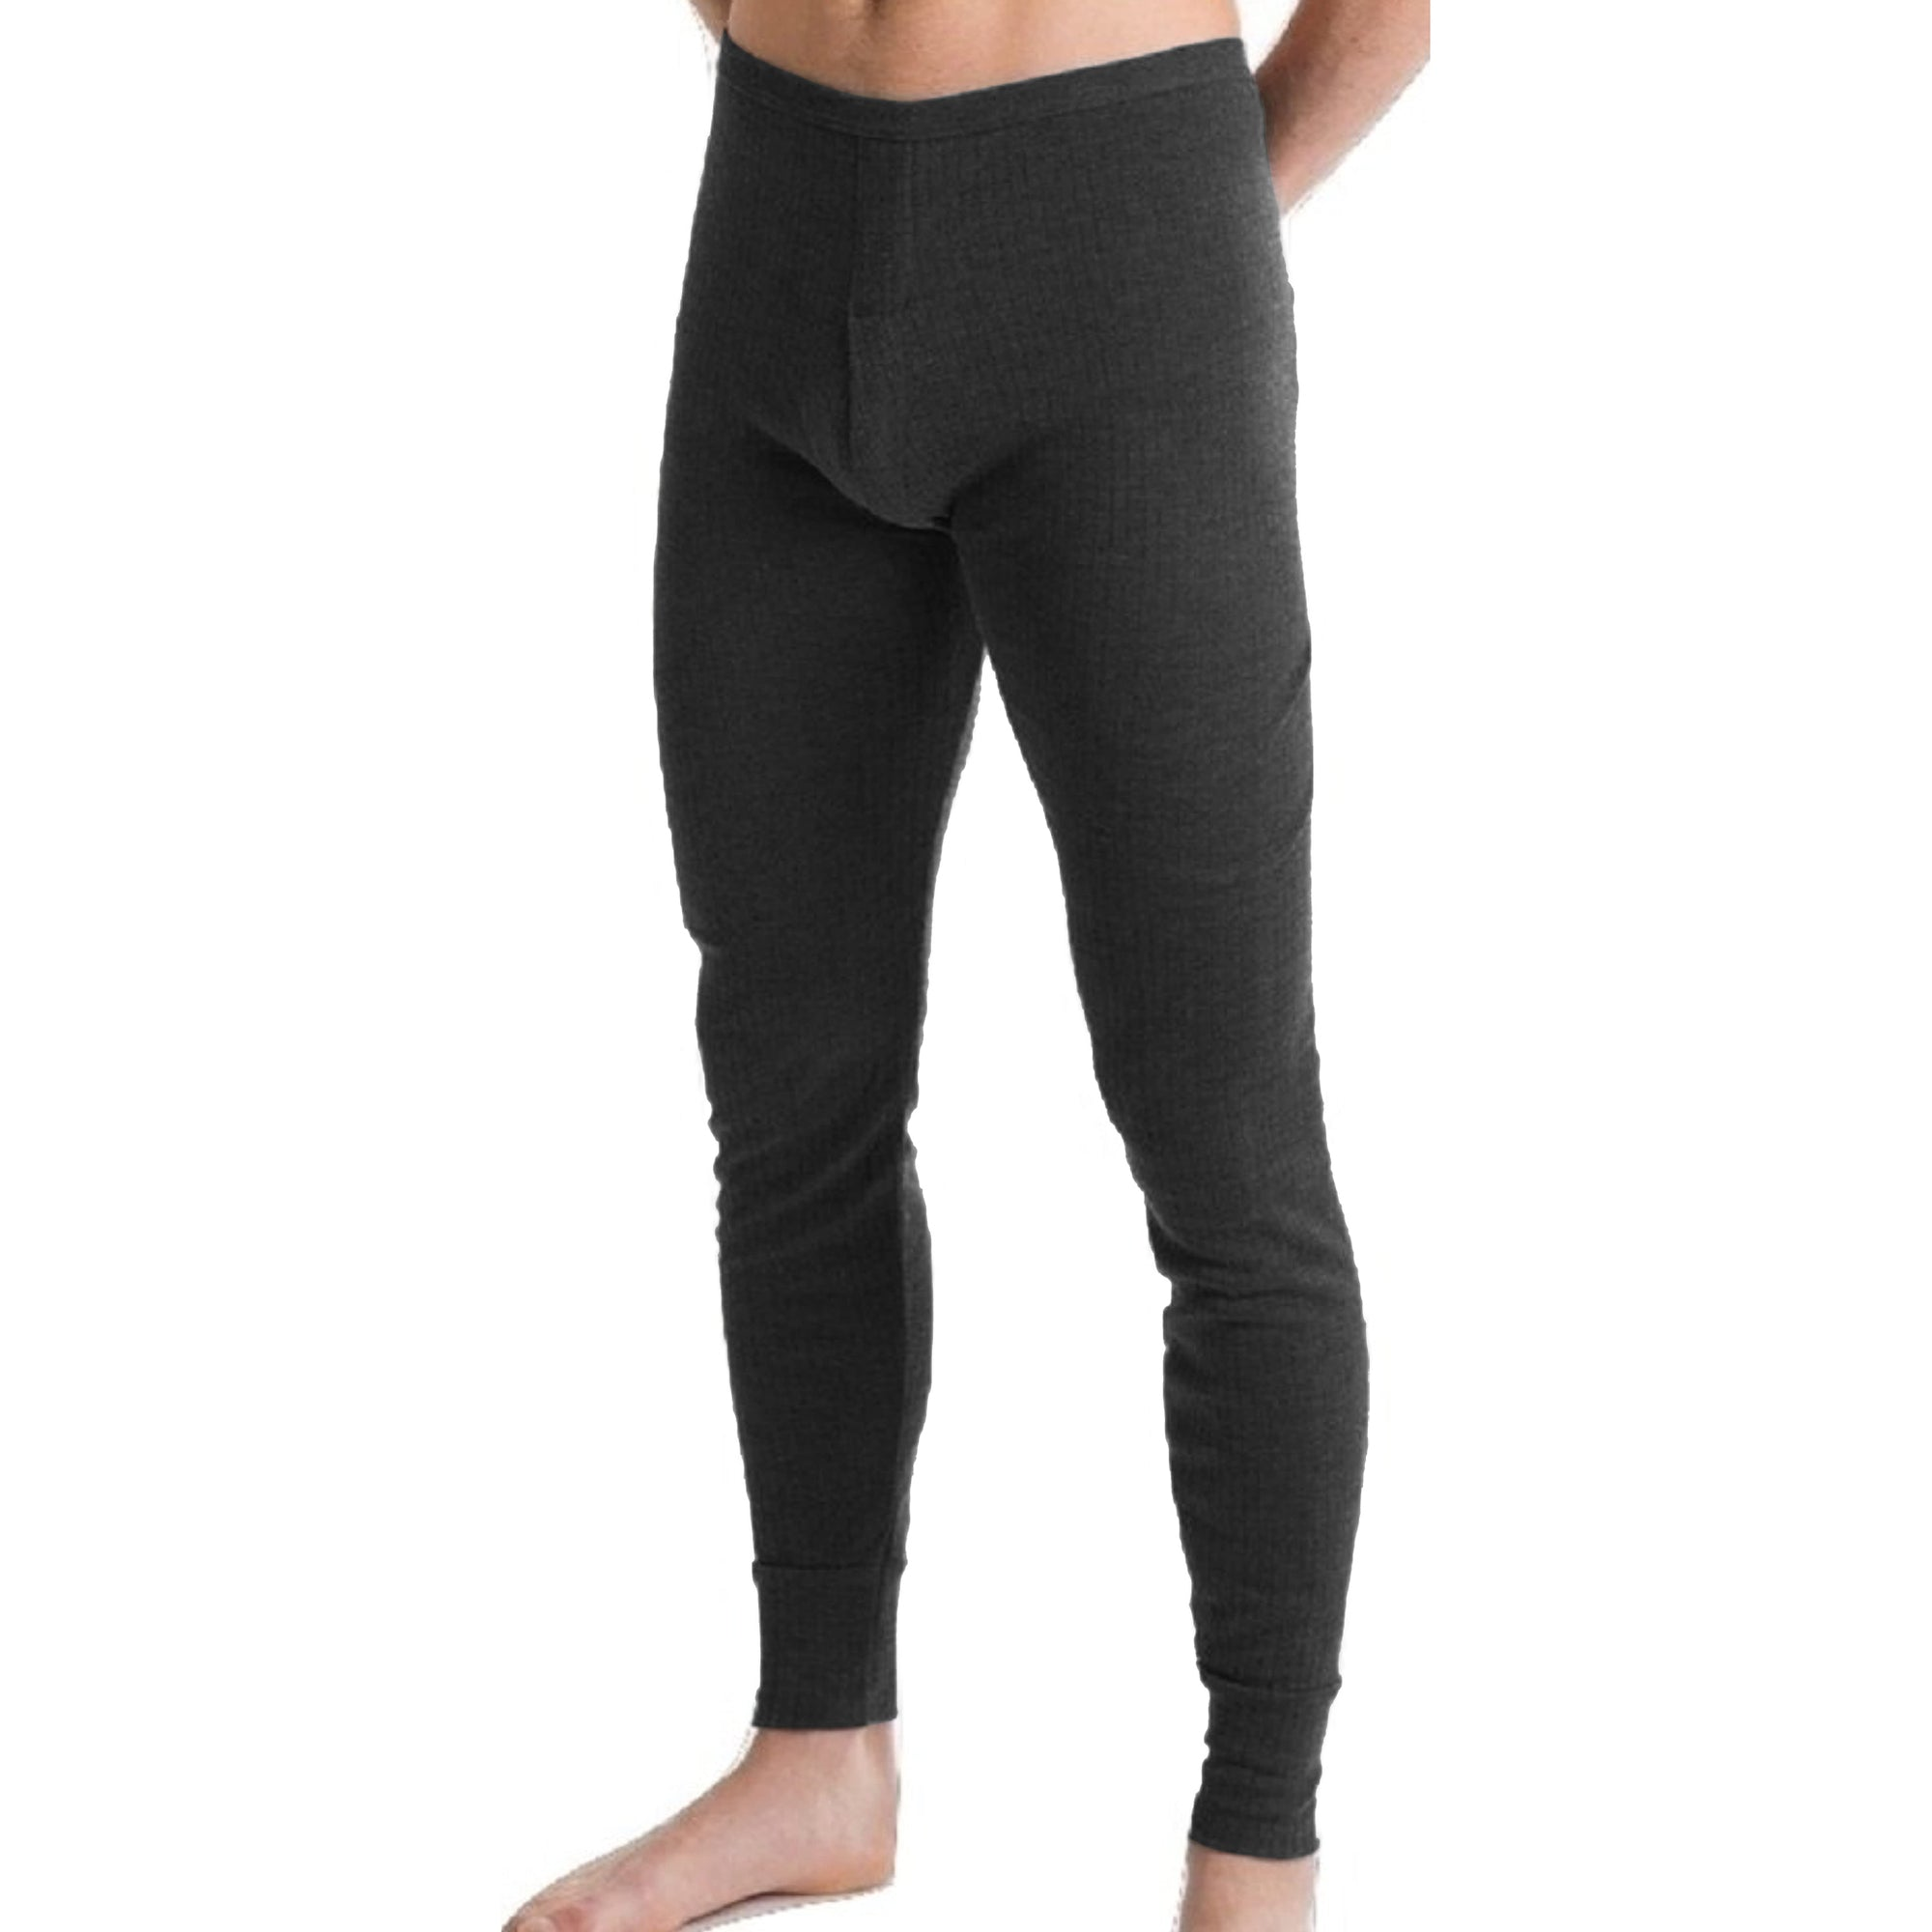 Next Thermal Slim Fit Under Trouser For Men-Charcoal-SP4462